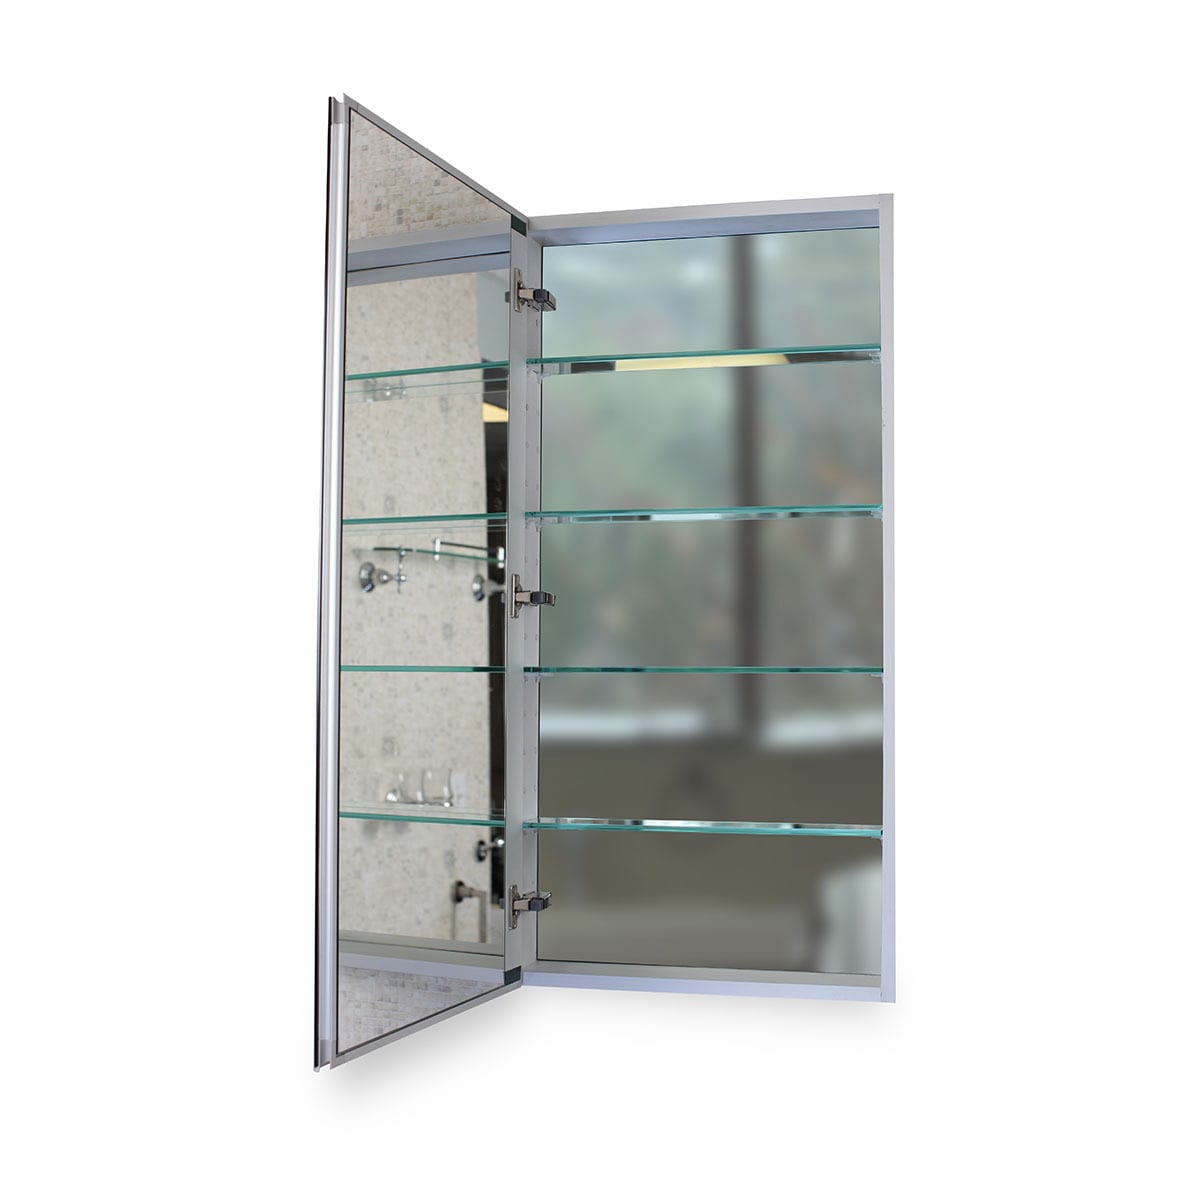 Shop Flawless 20x36 Medicine Cabinet with Blum Soft Close Door ...